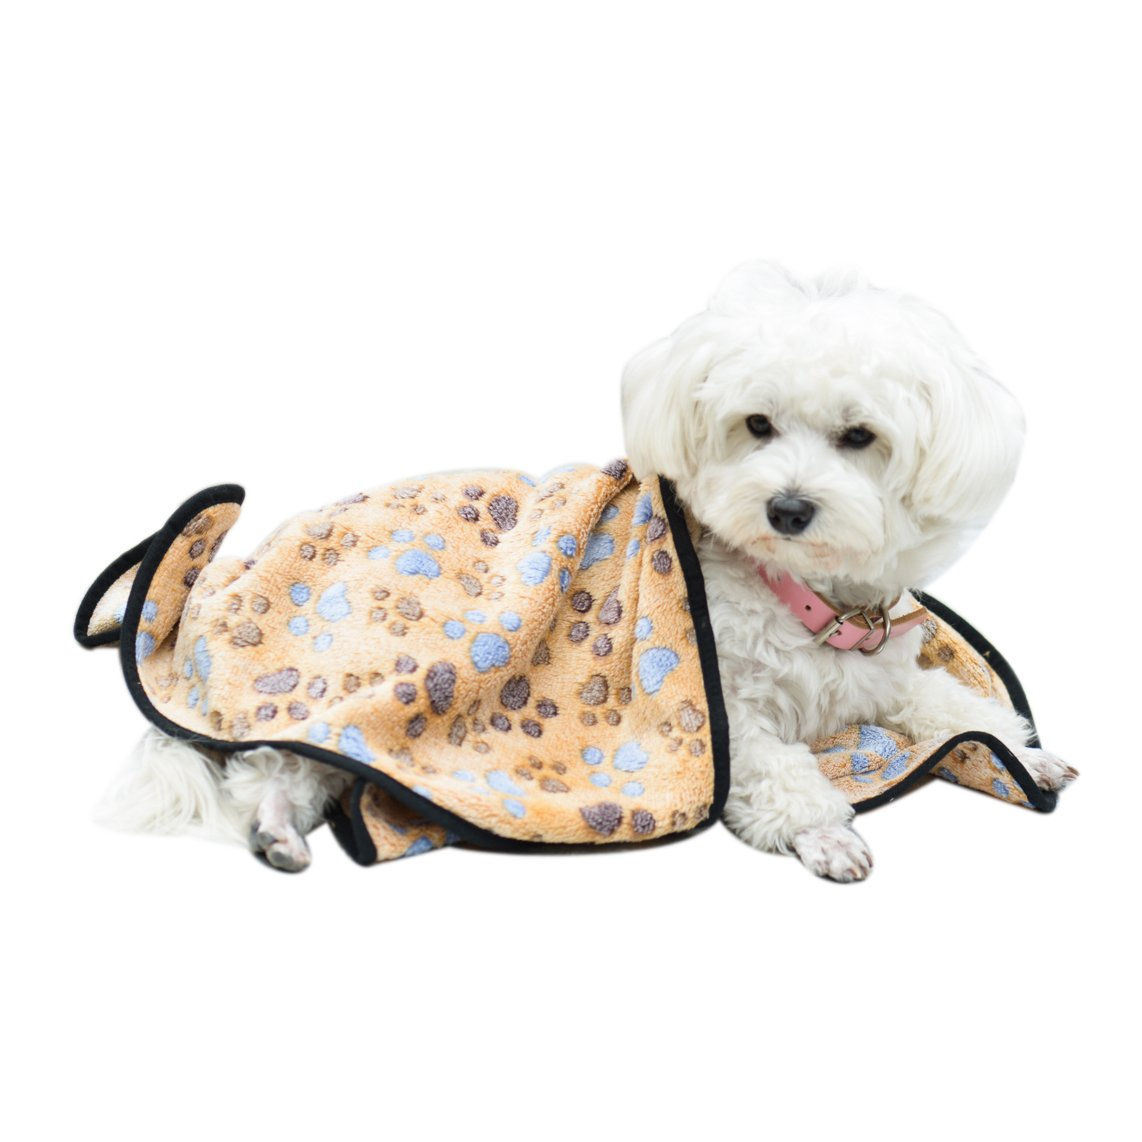 EXPAWLORER Pet Blanket for Small Cats & Dogs Thick BL0601 B